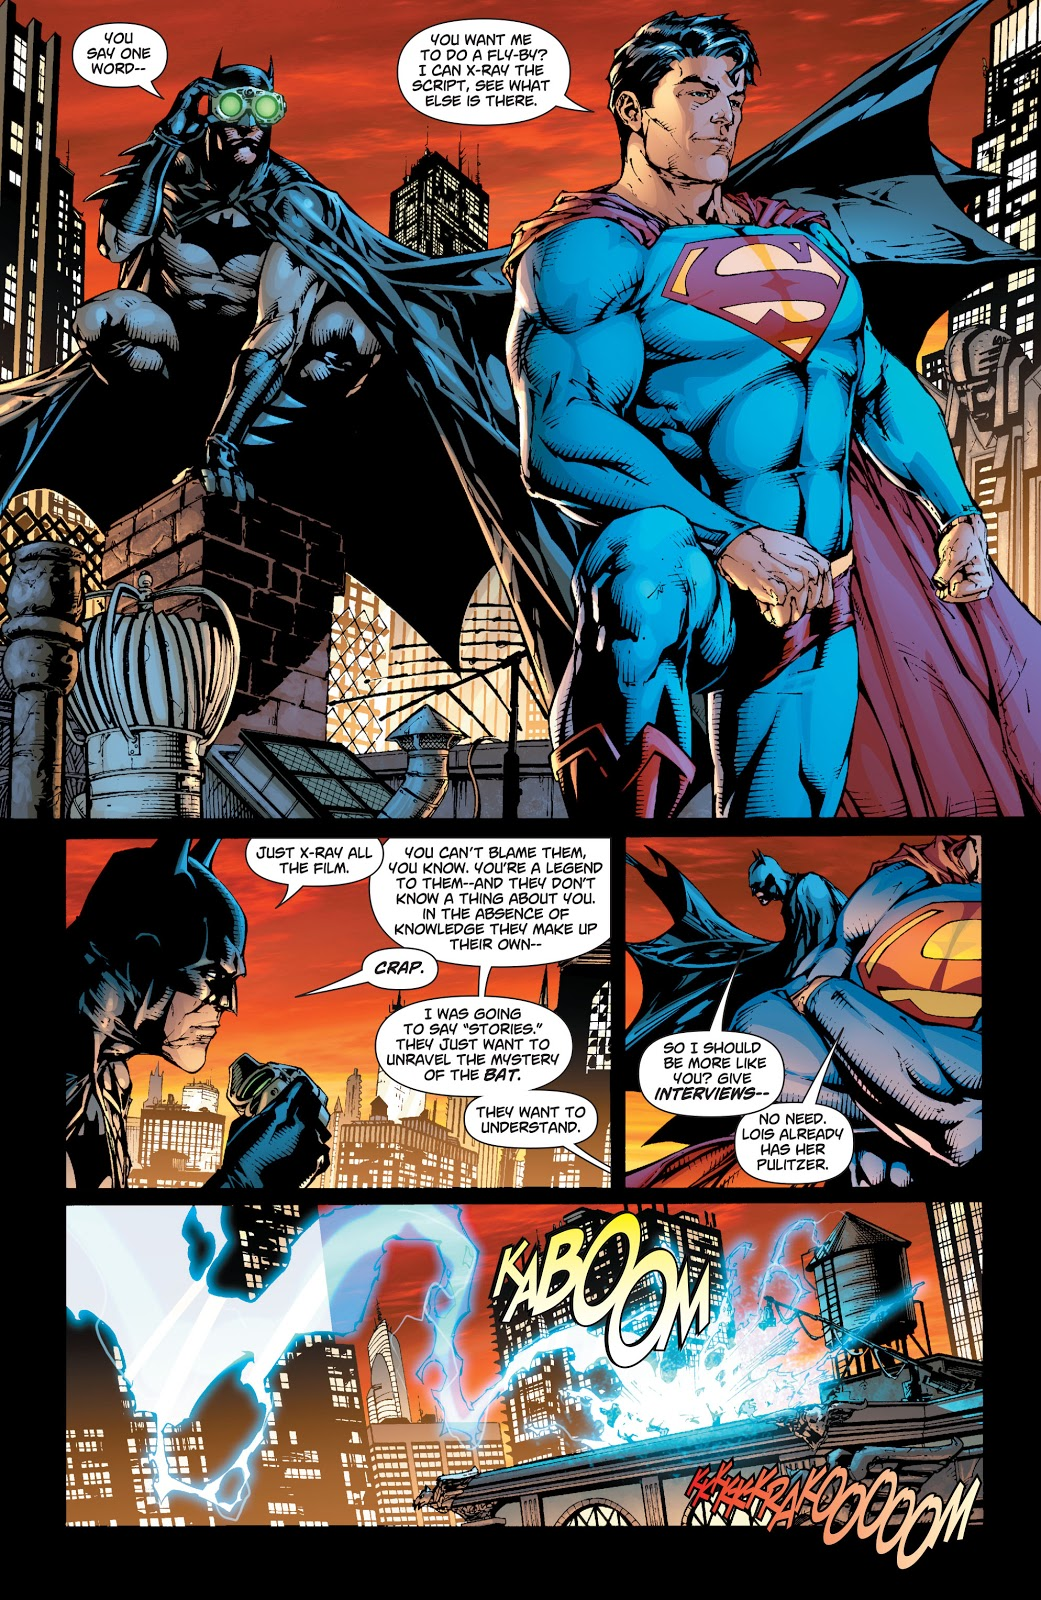 Superman Batman The Search for Kryptonite review